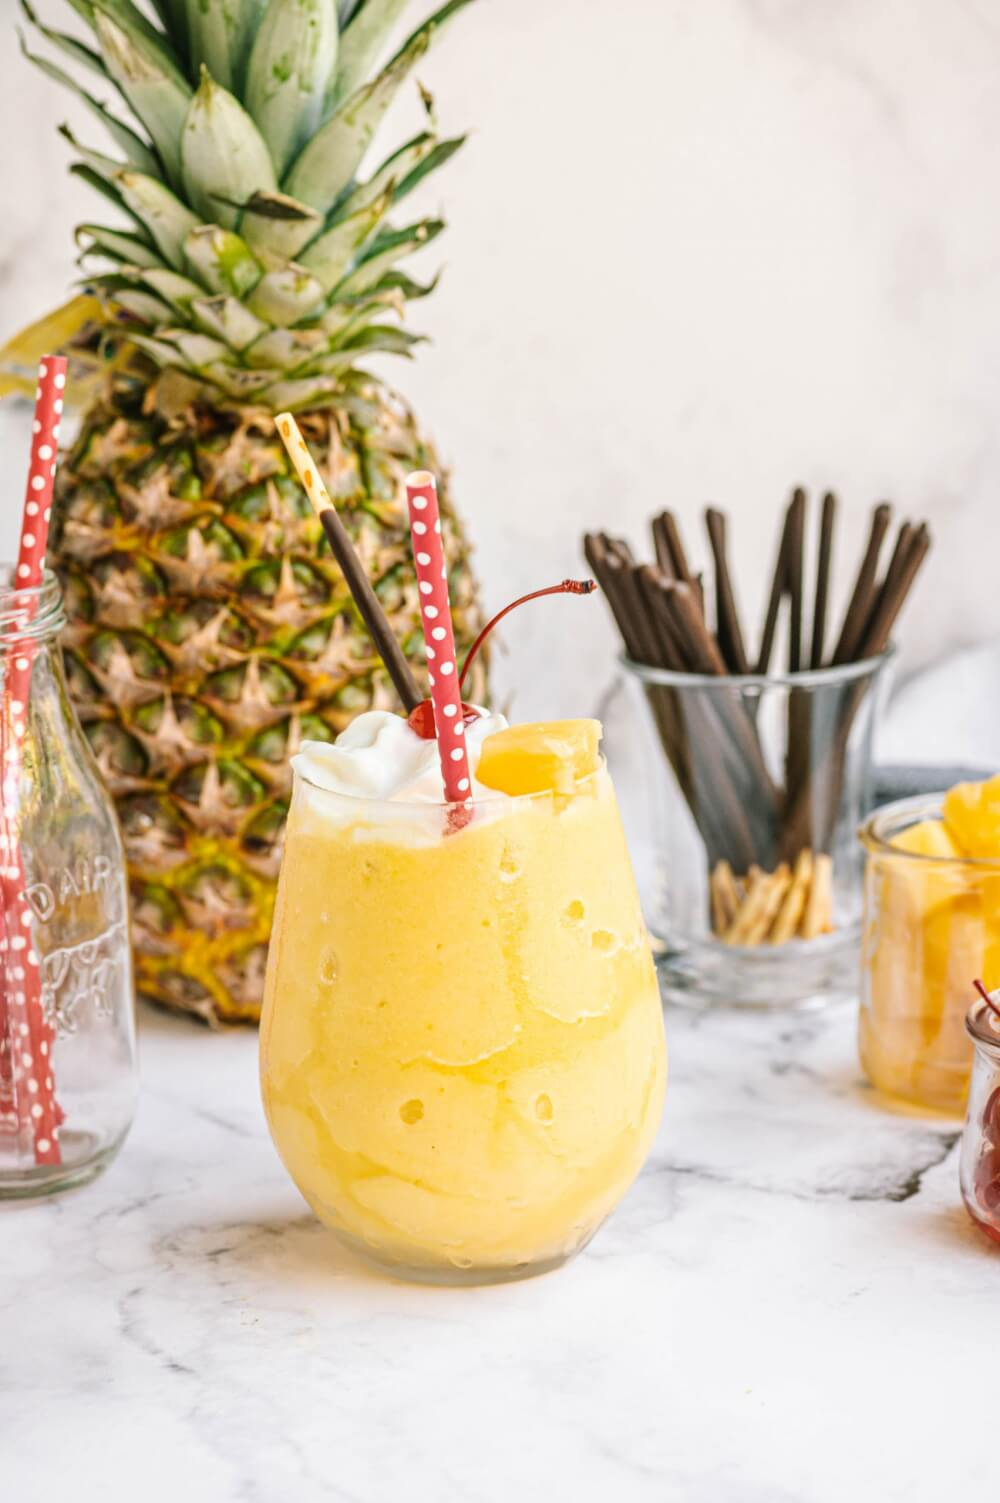 Pineapple Dessert Recipe Roundup by top Hawaii blog Hawaii Travel with Kids: Copy Cat Dole Whip Recipe by top Hawaii blog Hawaii Travel with Kids